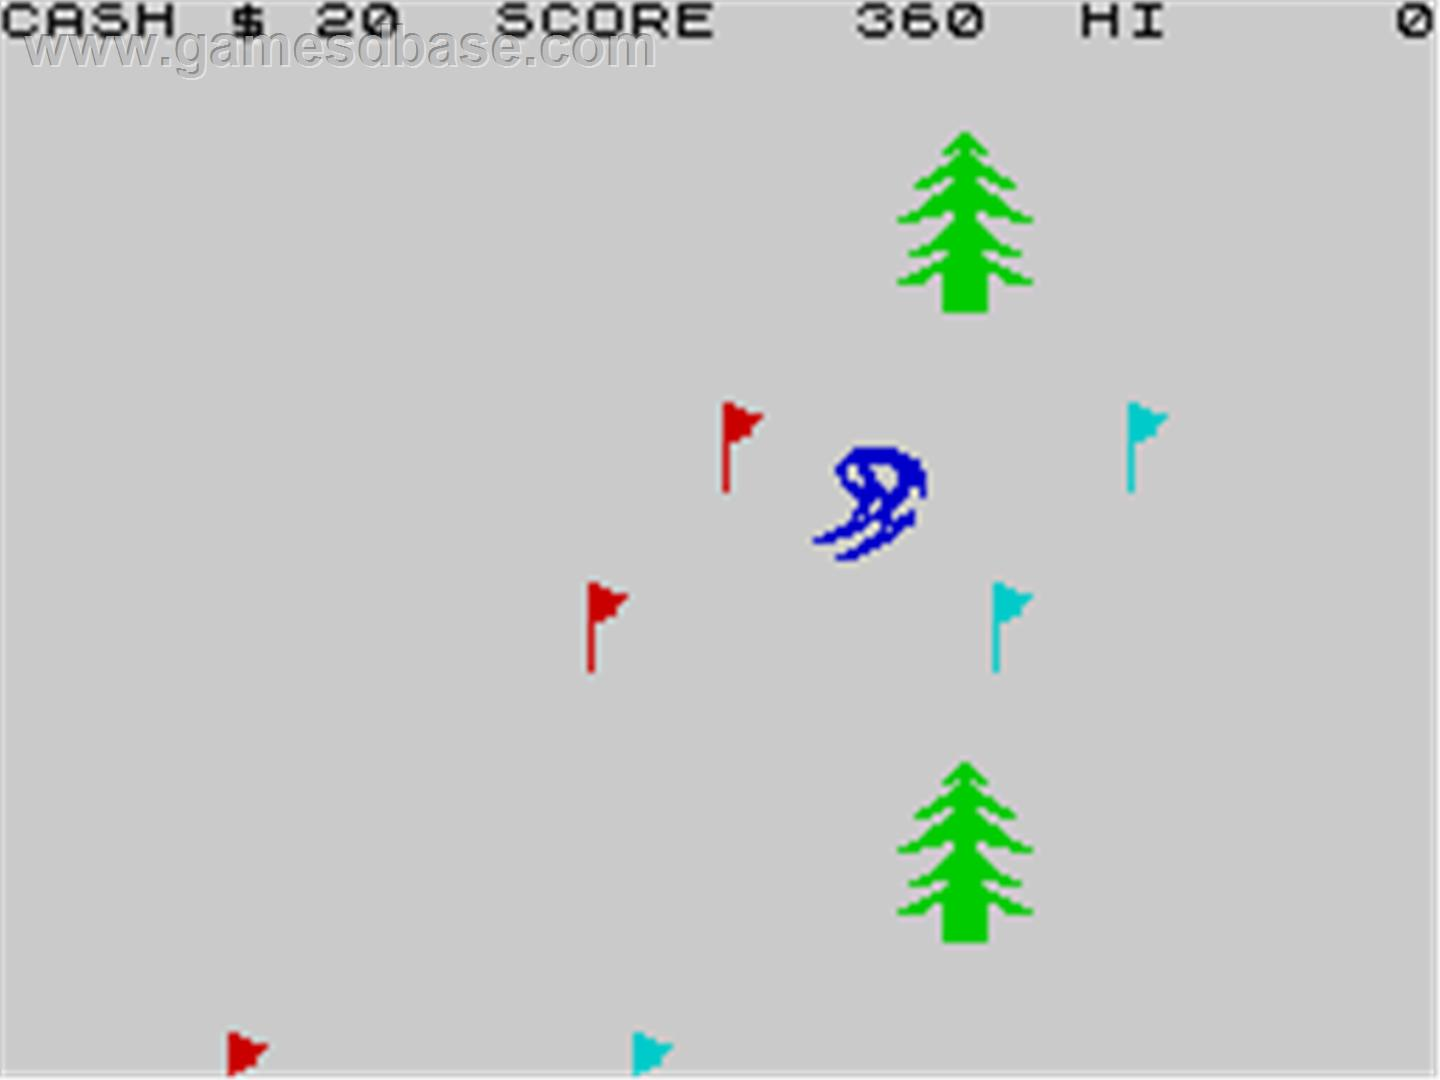 Horace_Goes_Skiing_-_1982_-_Sinclair_Research_Ltd.